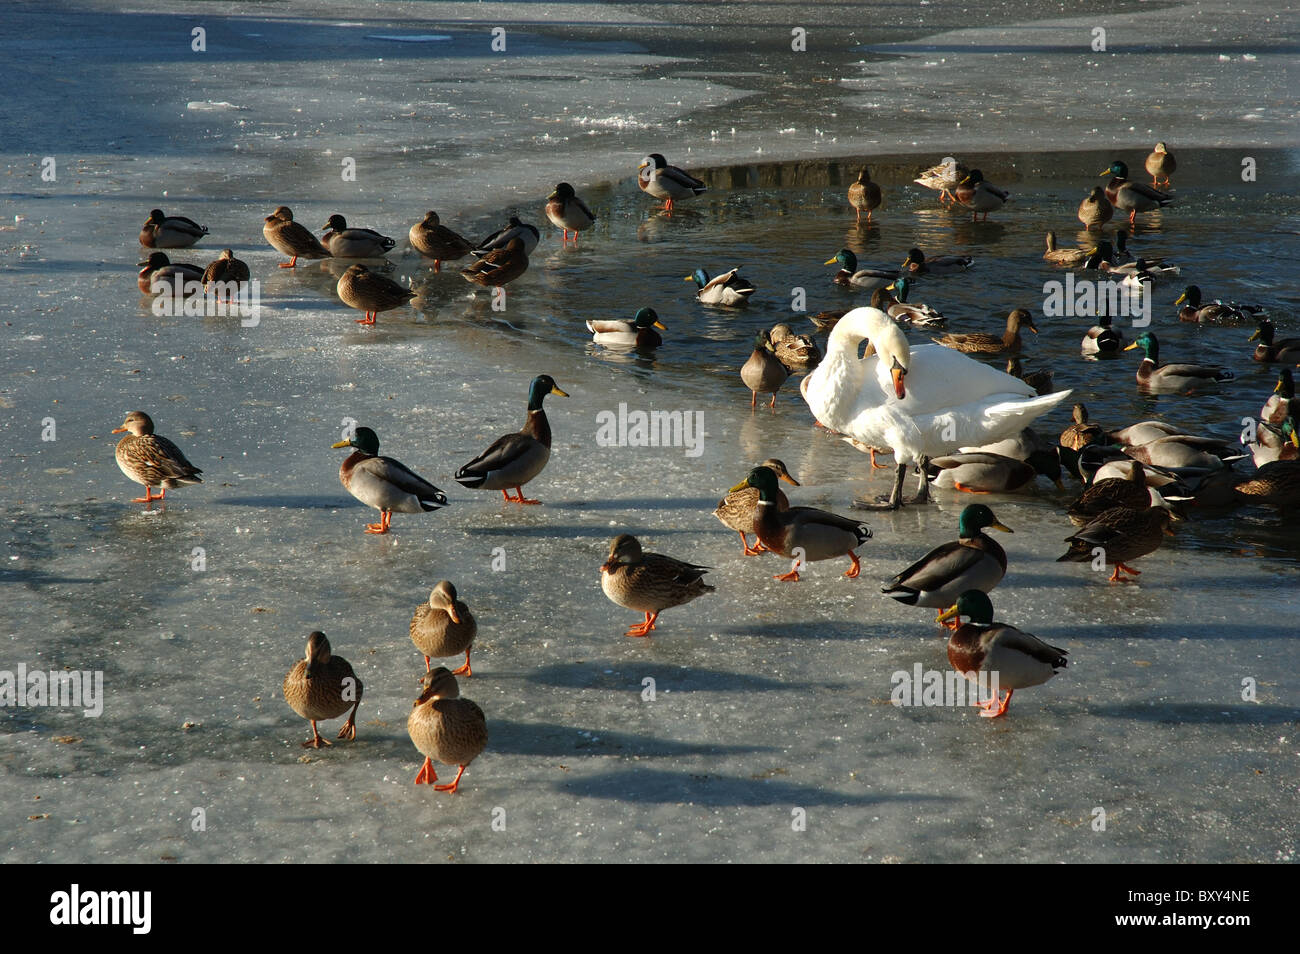 wildfowl on the frozen Grand Union Canal, Foxton, Leicestershire, England, UK - Stock Image